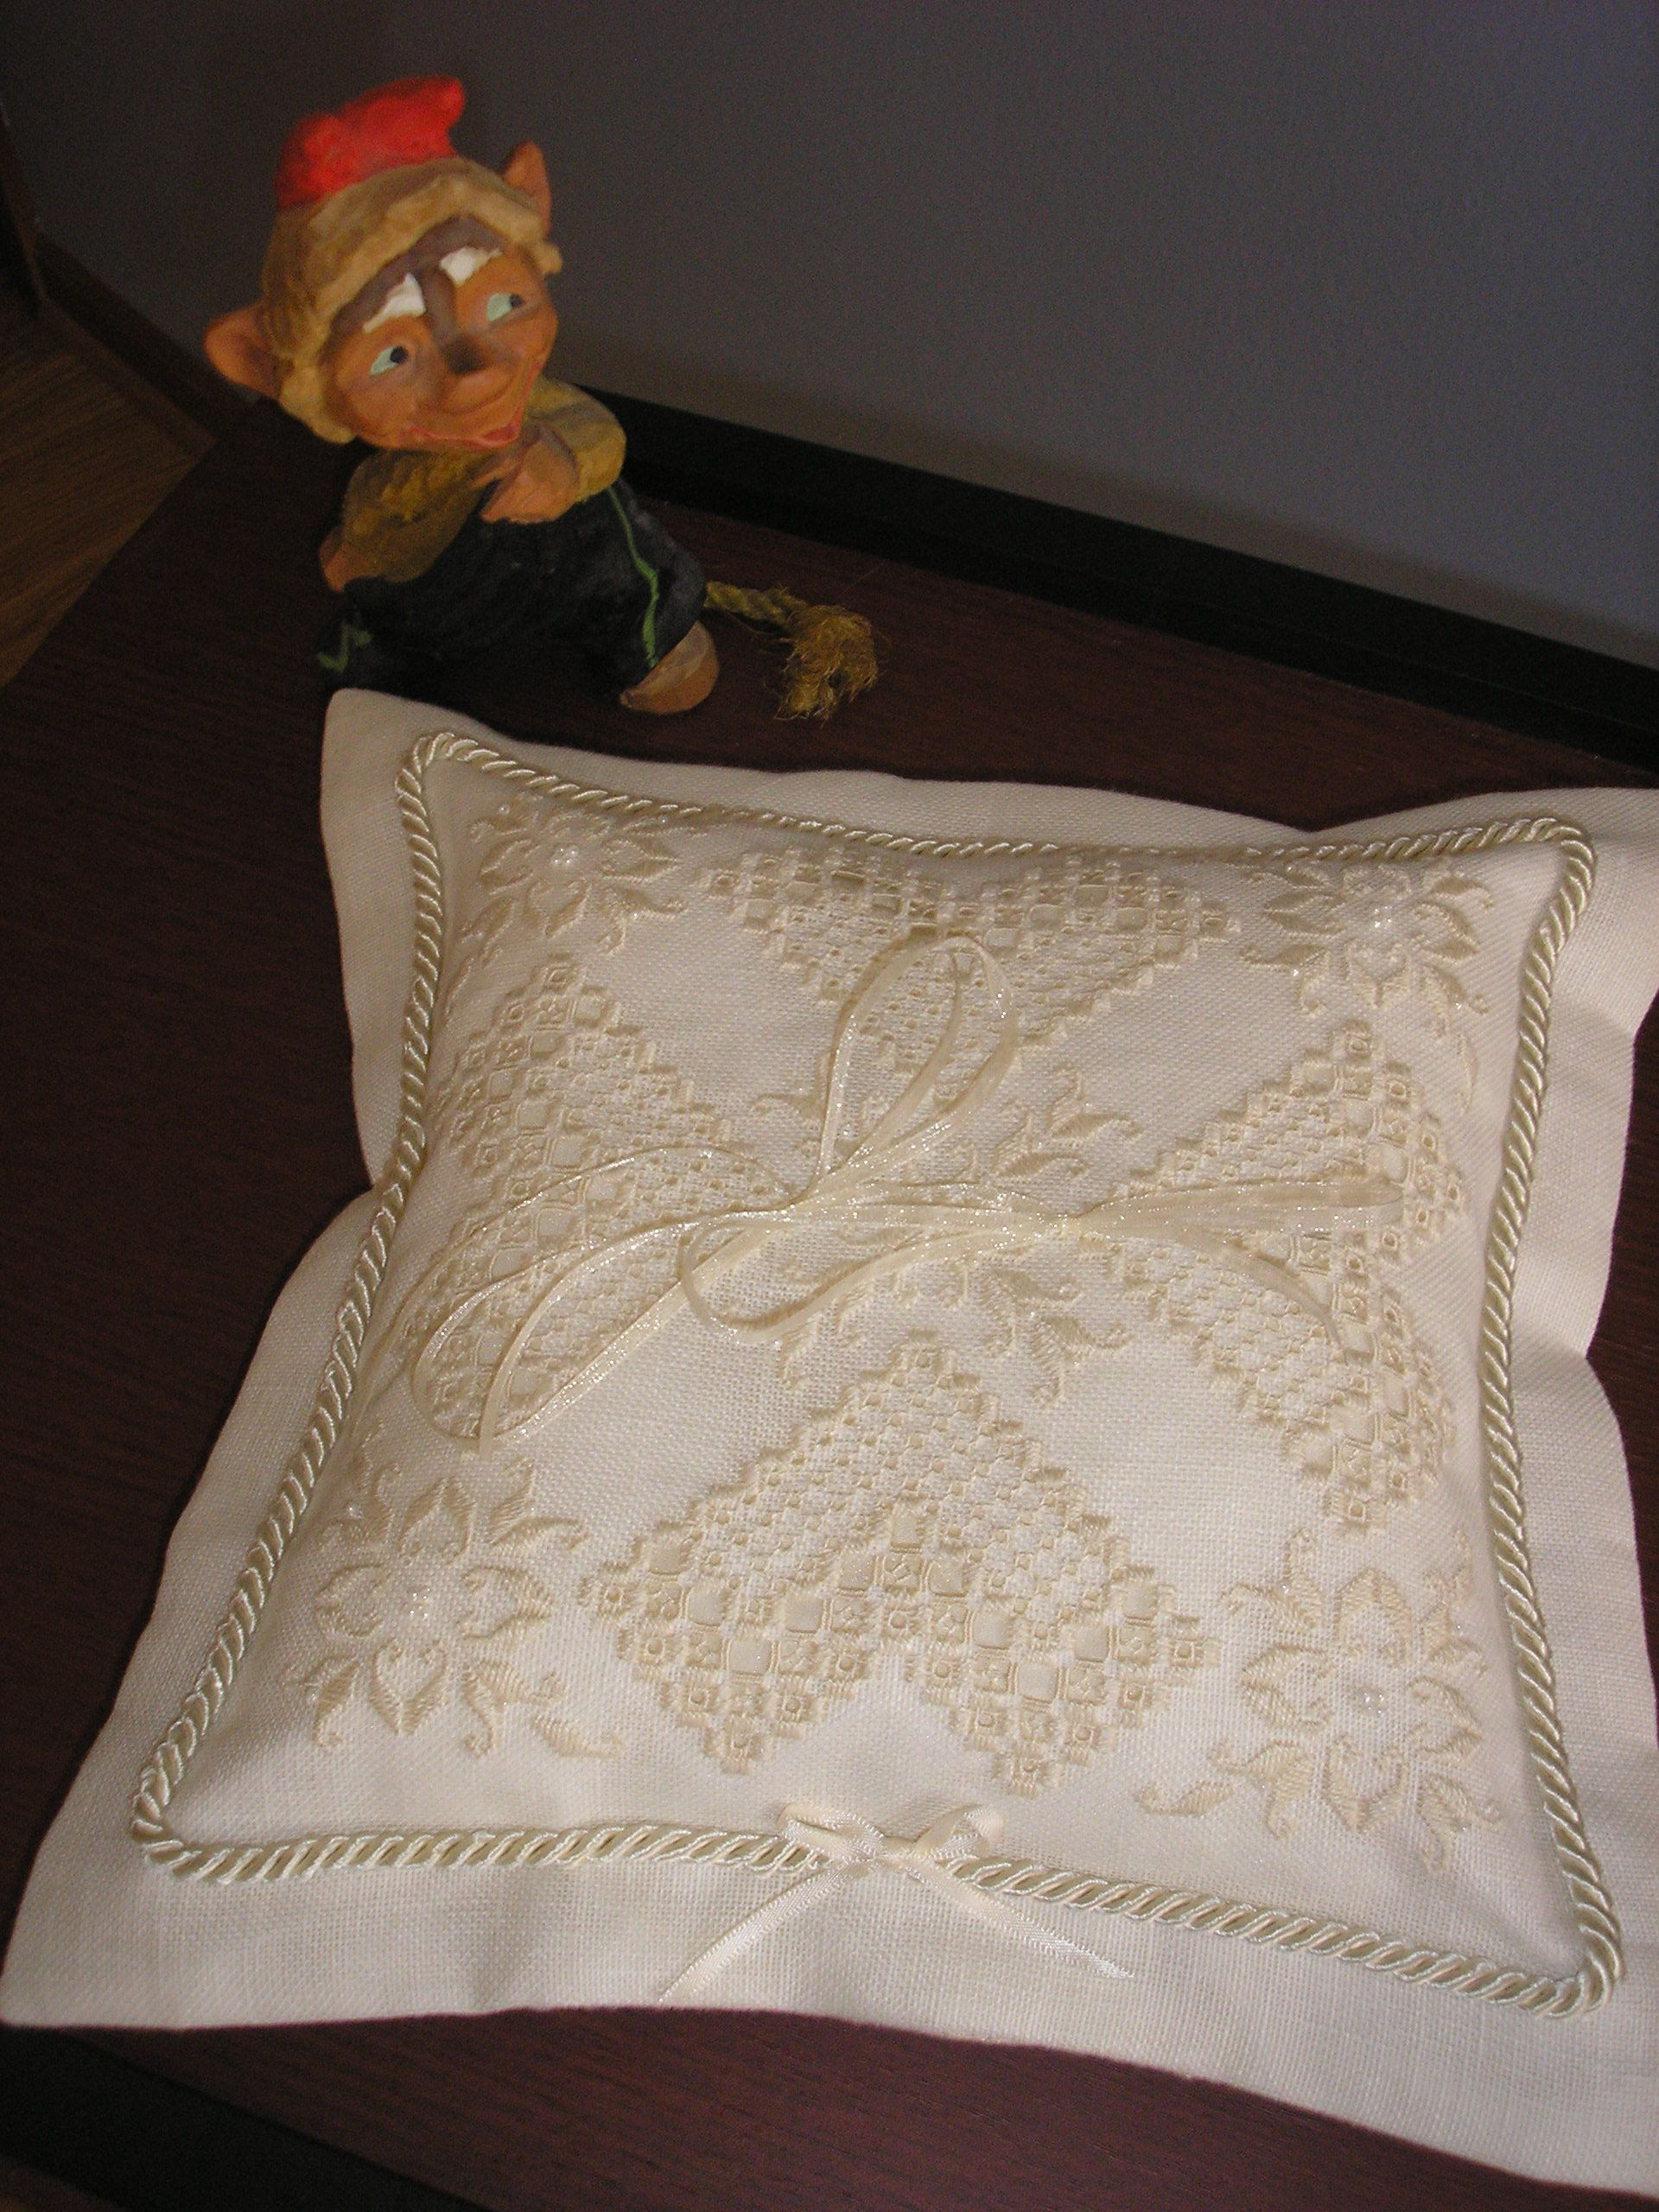 The ring bear's pillow I just finished for a family wedding.